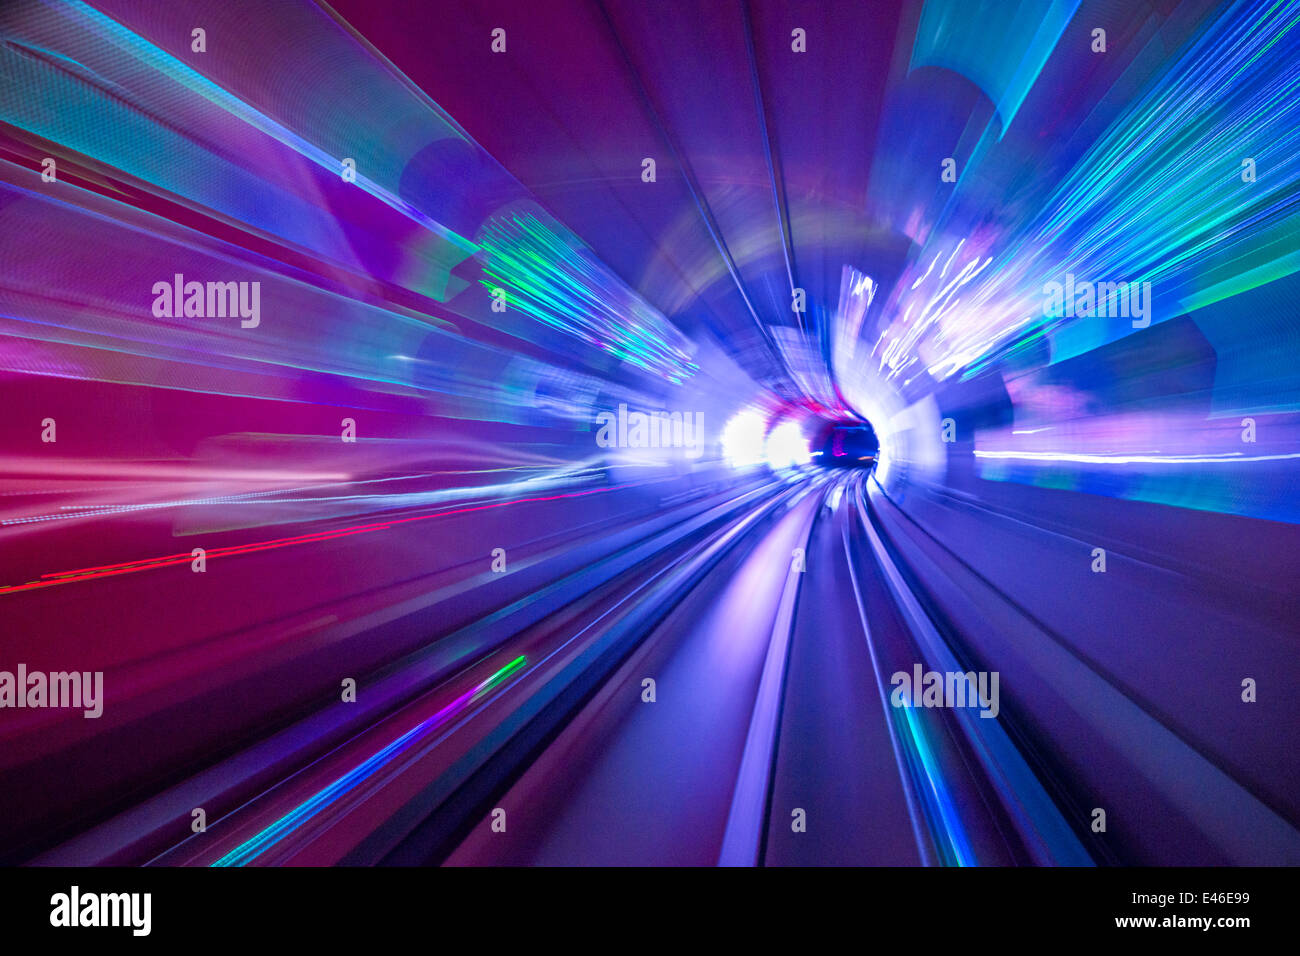 Sightseeing tunnel lights under the Huangpu River in Shanghai, China. - Stock Image